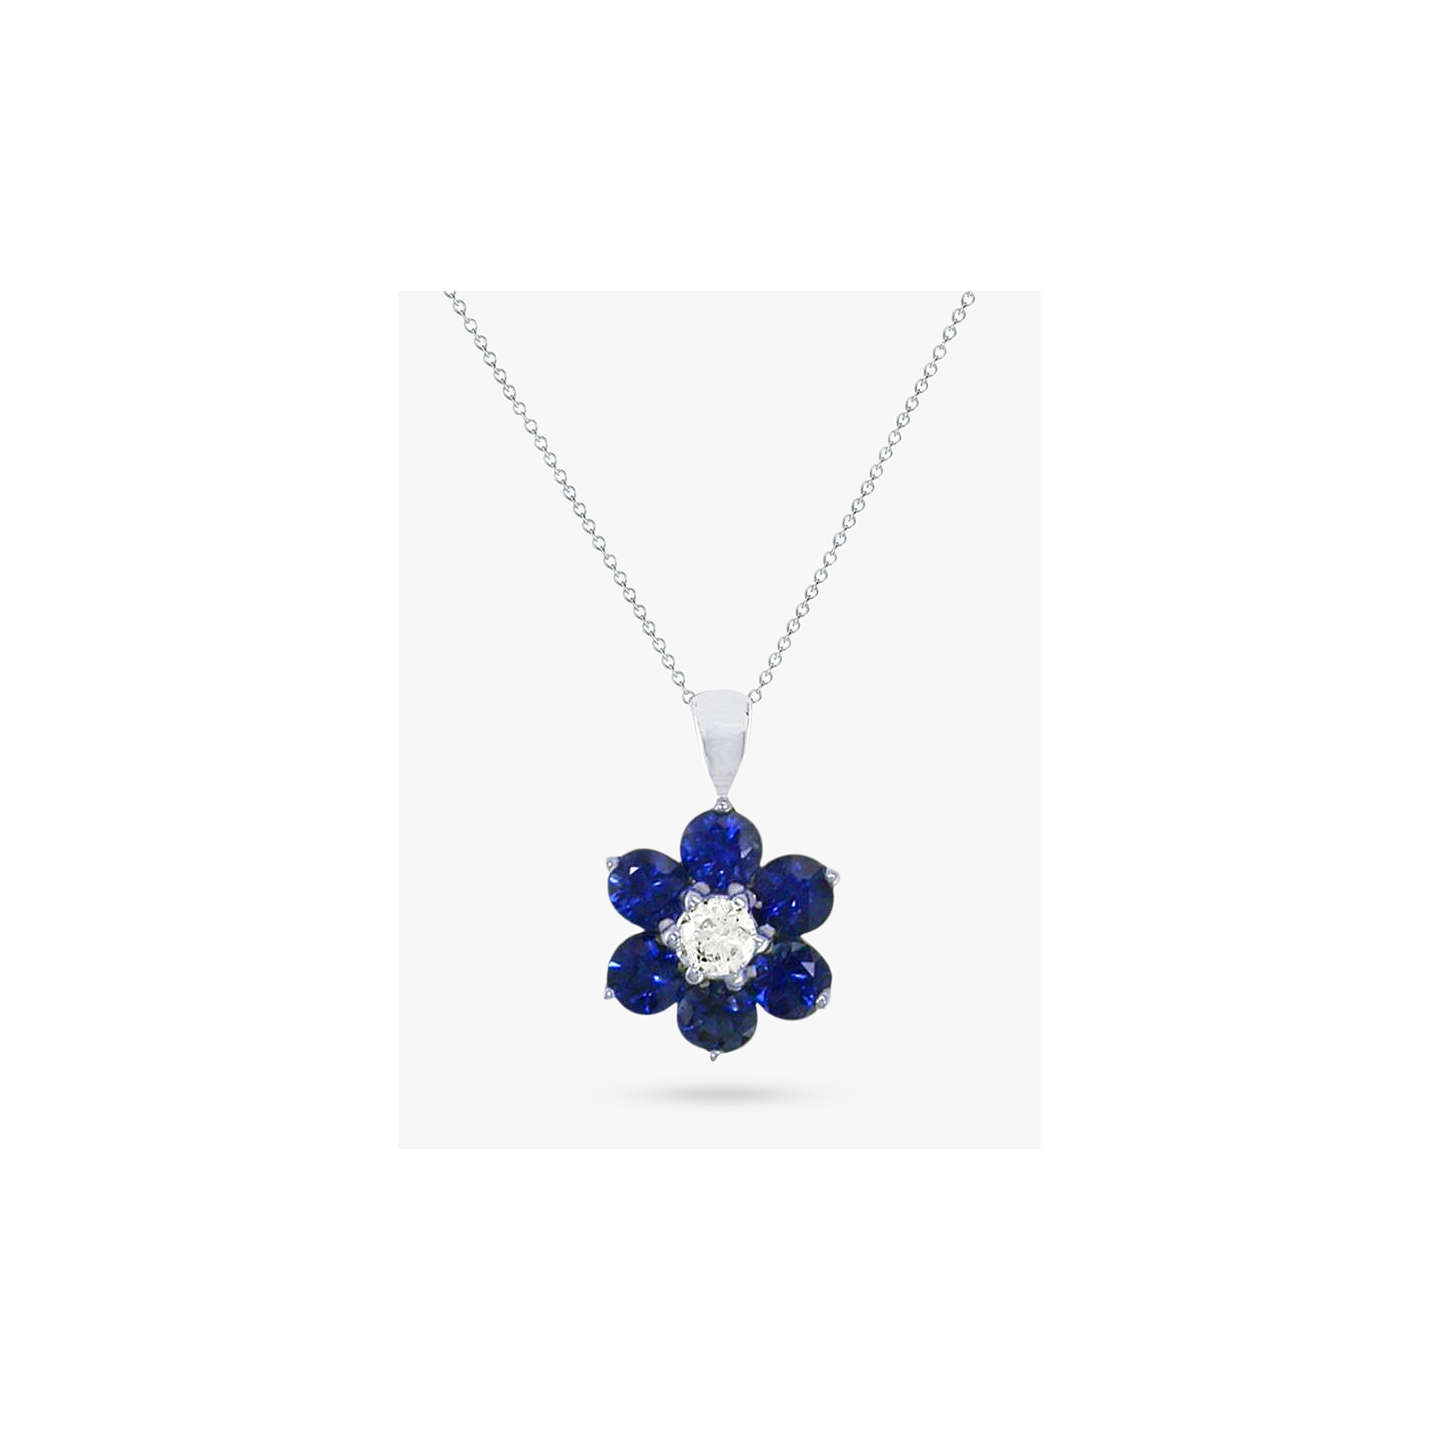 pendant jewelry necklace master art diamond sapphire necklaces and circa nouveau id millegrain at j